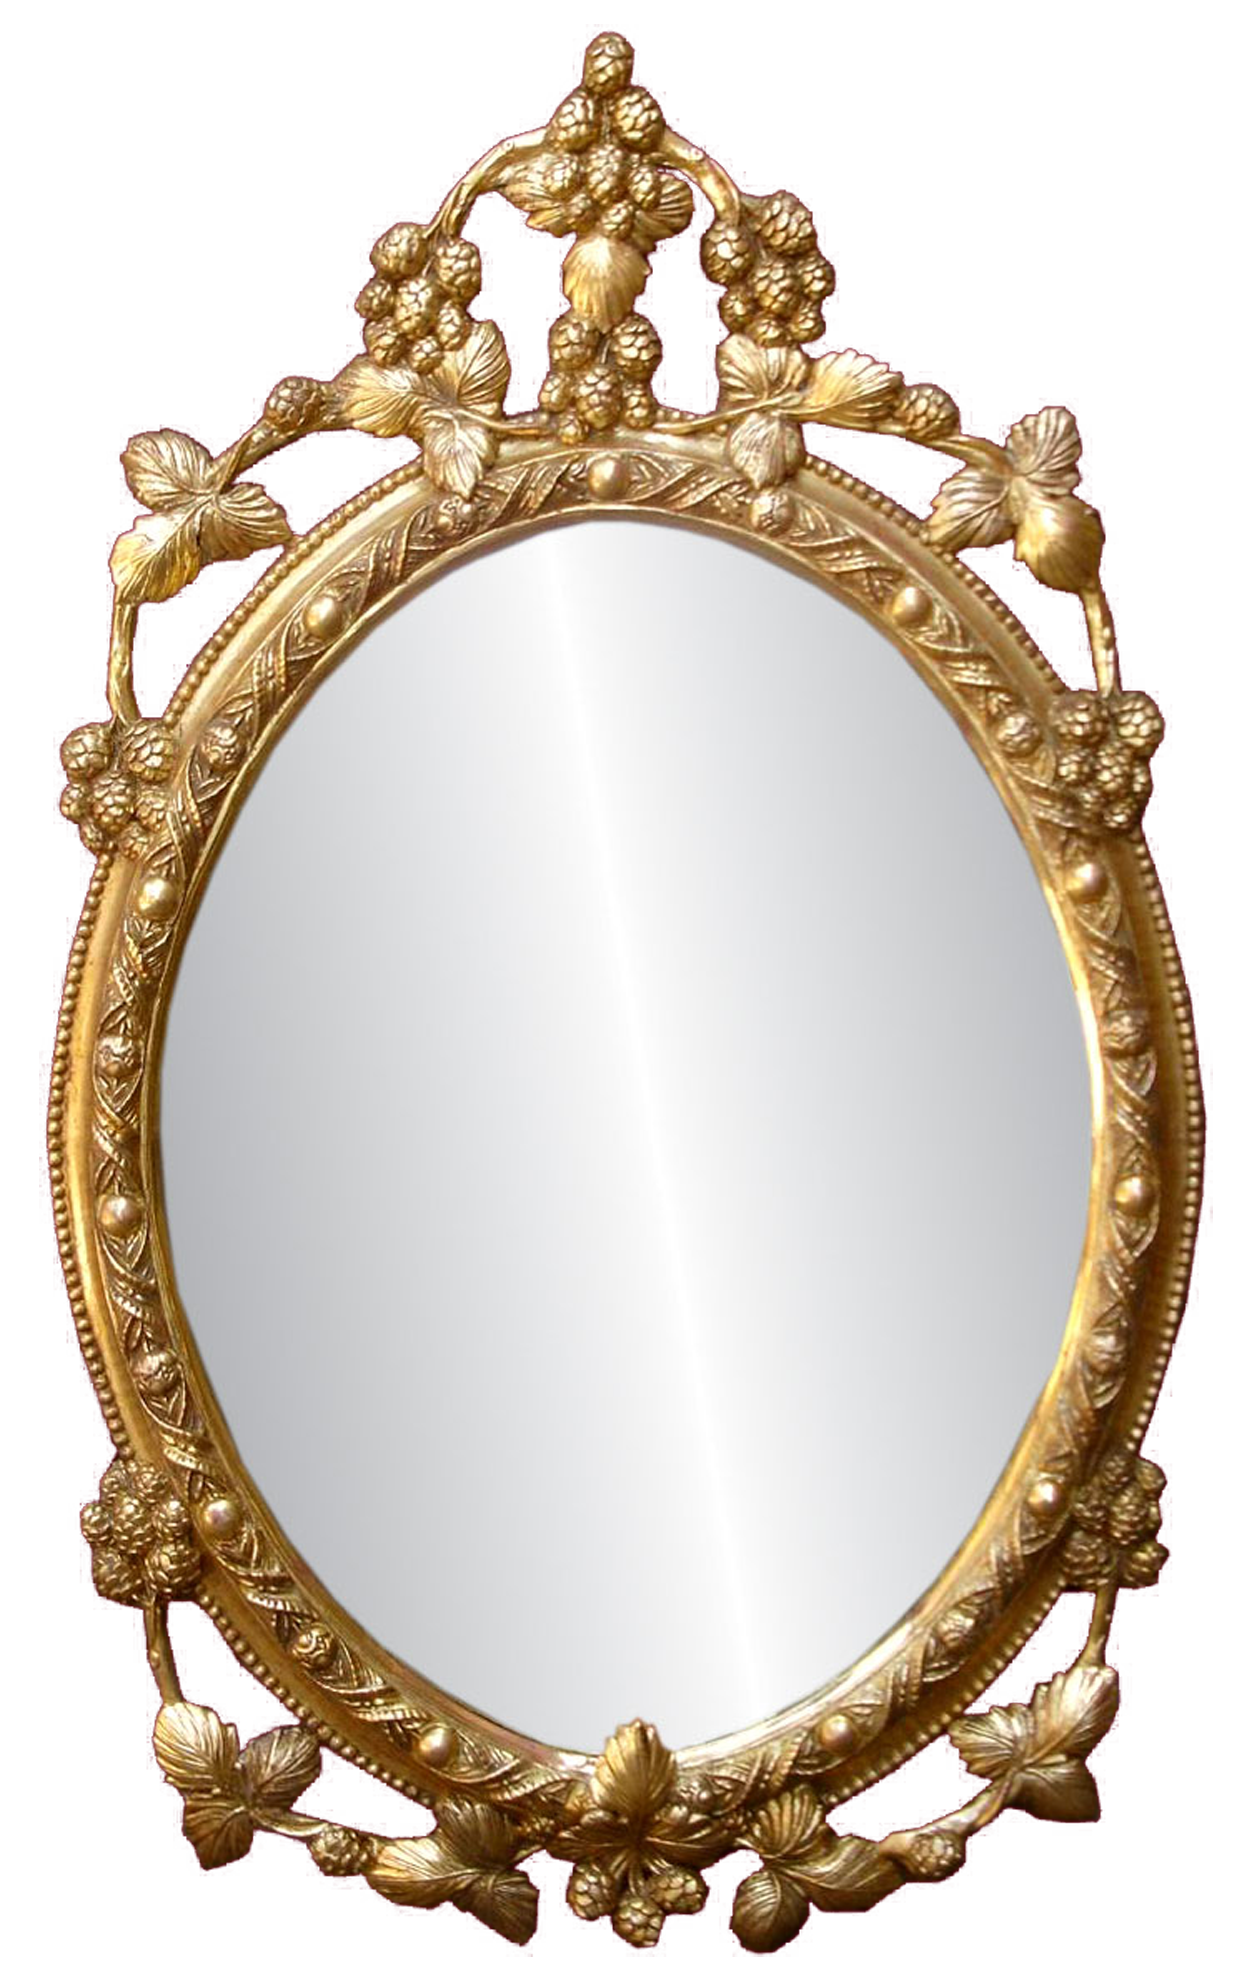 Mirror D Free Images At Clker Com Vector Clip Art